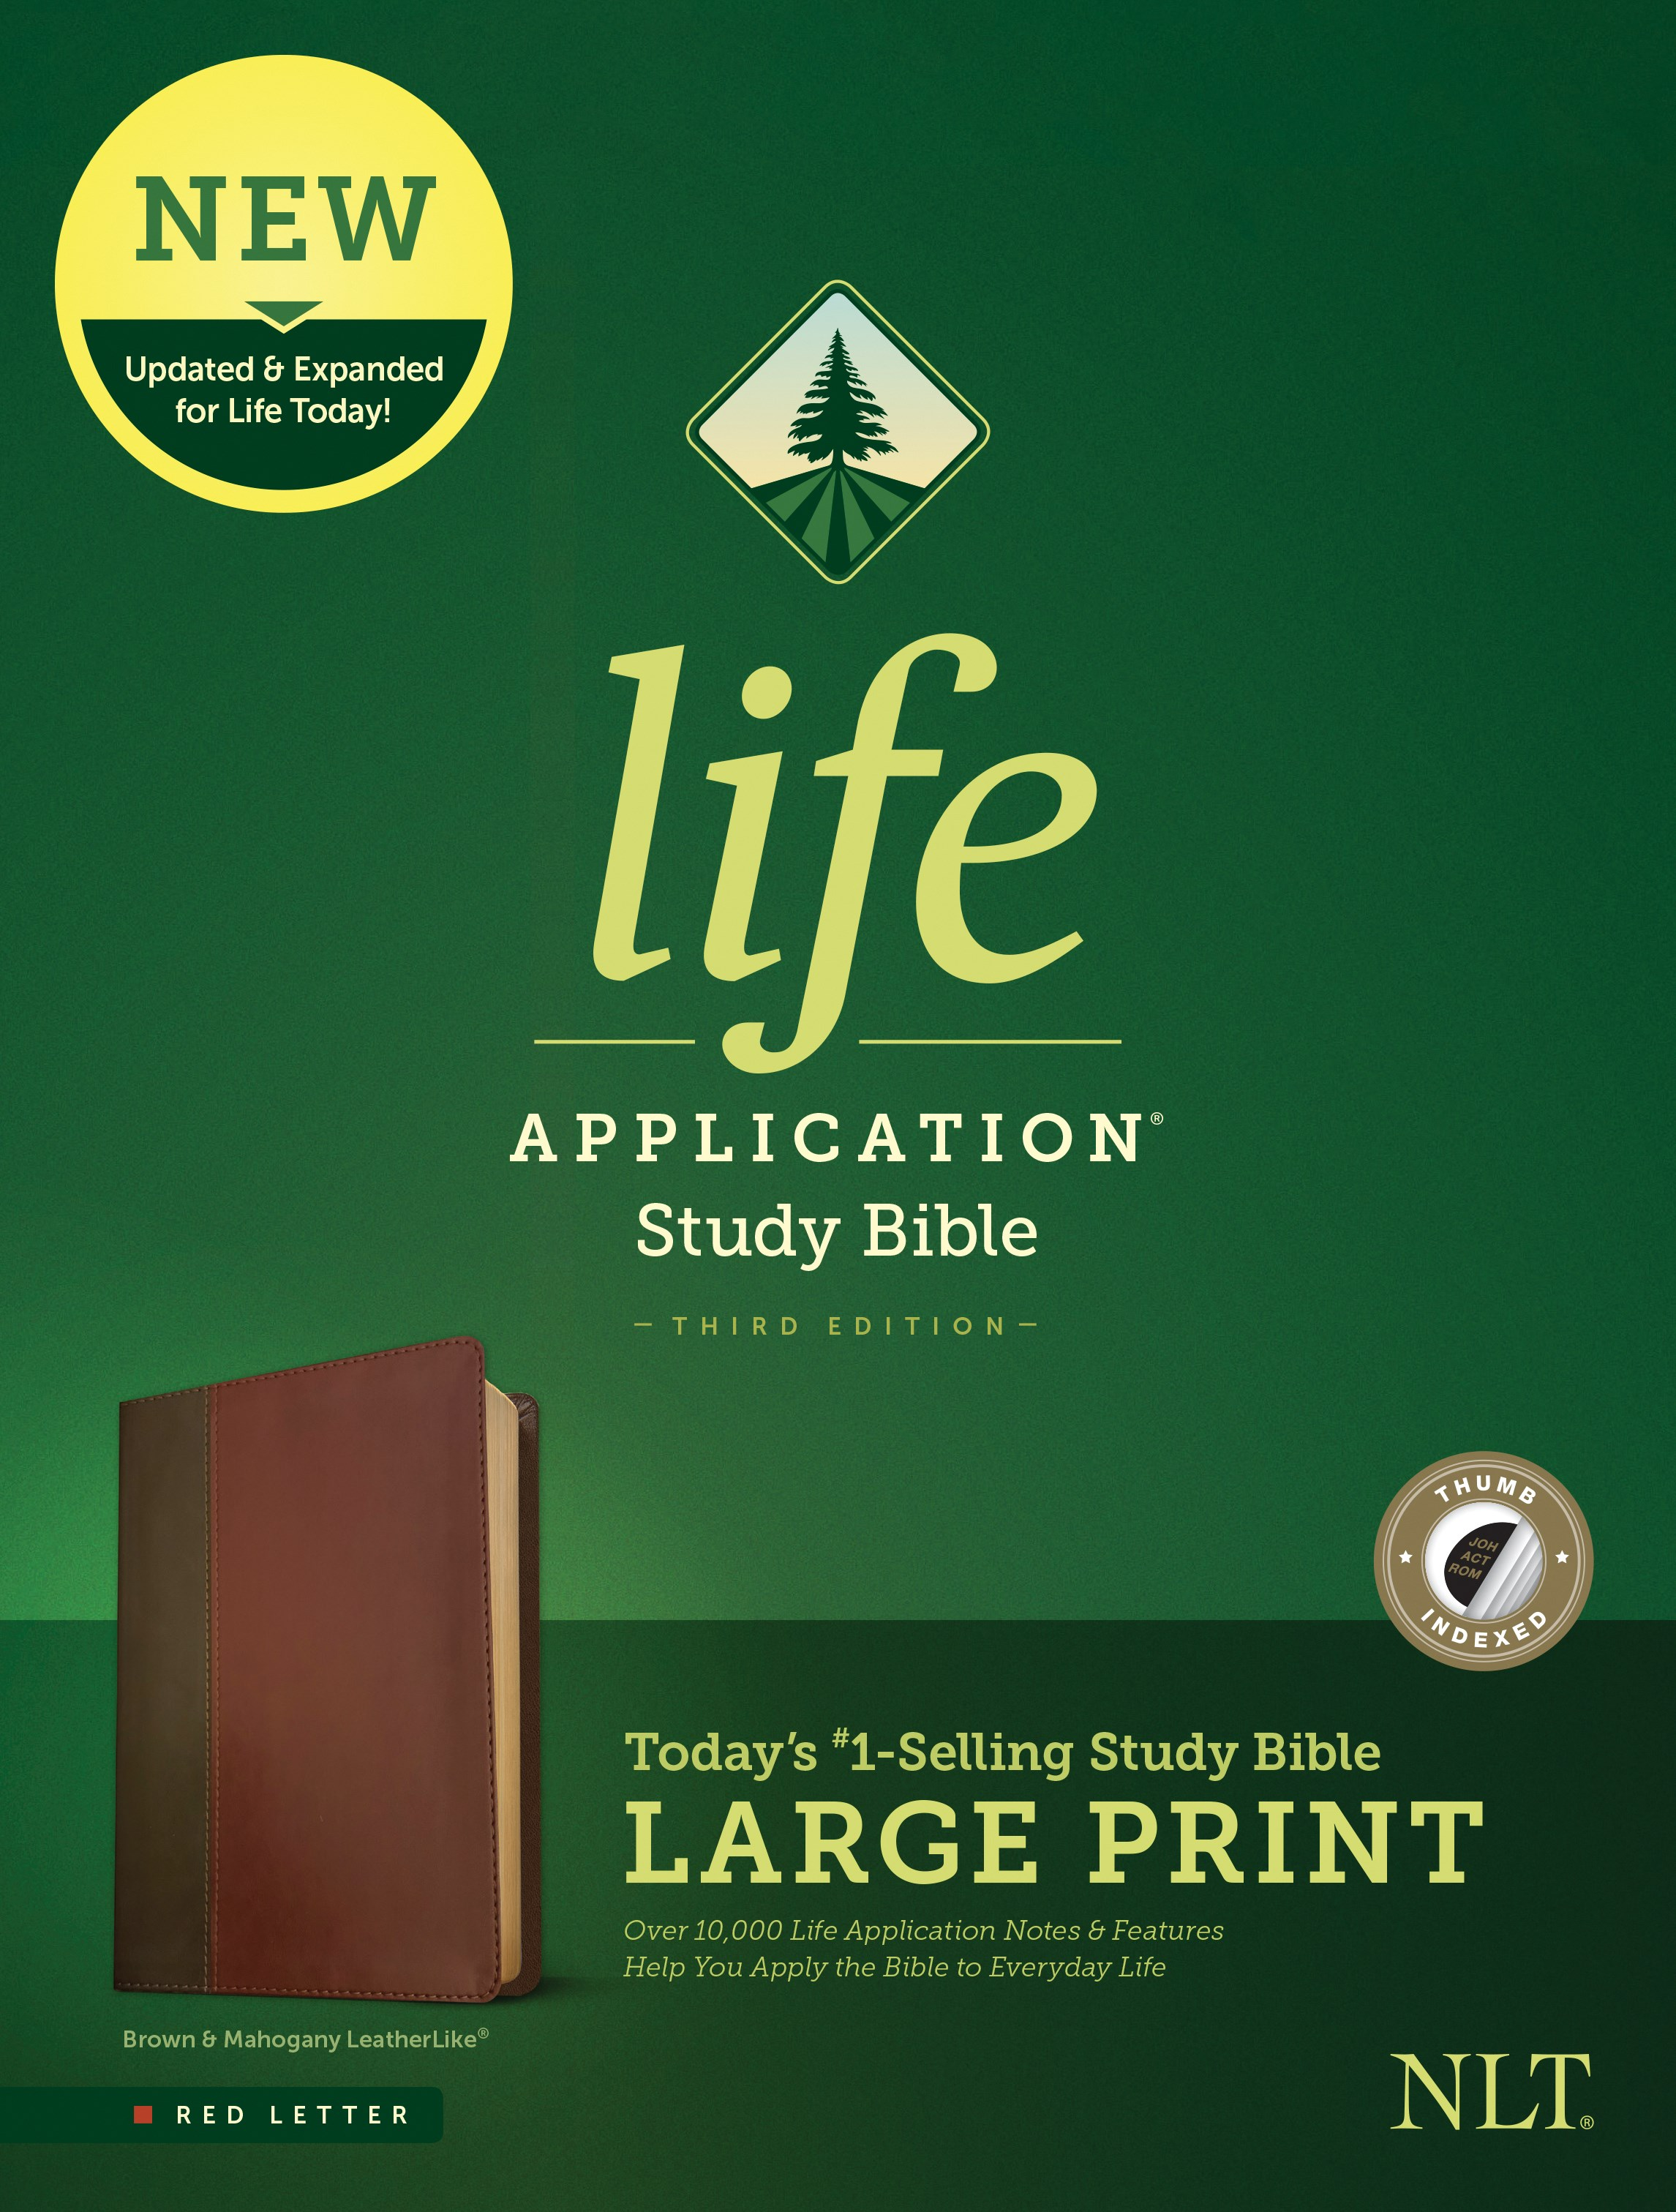 NLT Life Application Study Bible/Large Print (Third Edition) (RL)-Brown/Tan LeatherLike Indexed